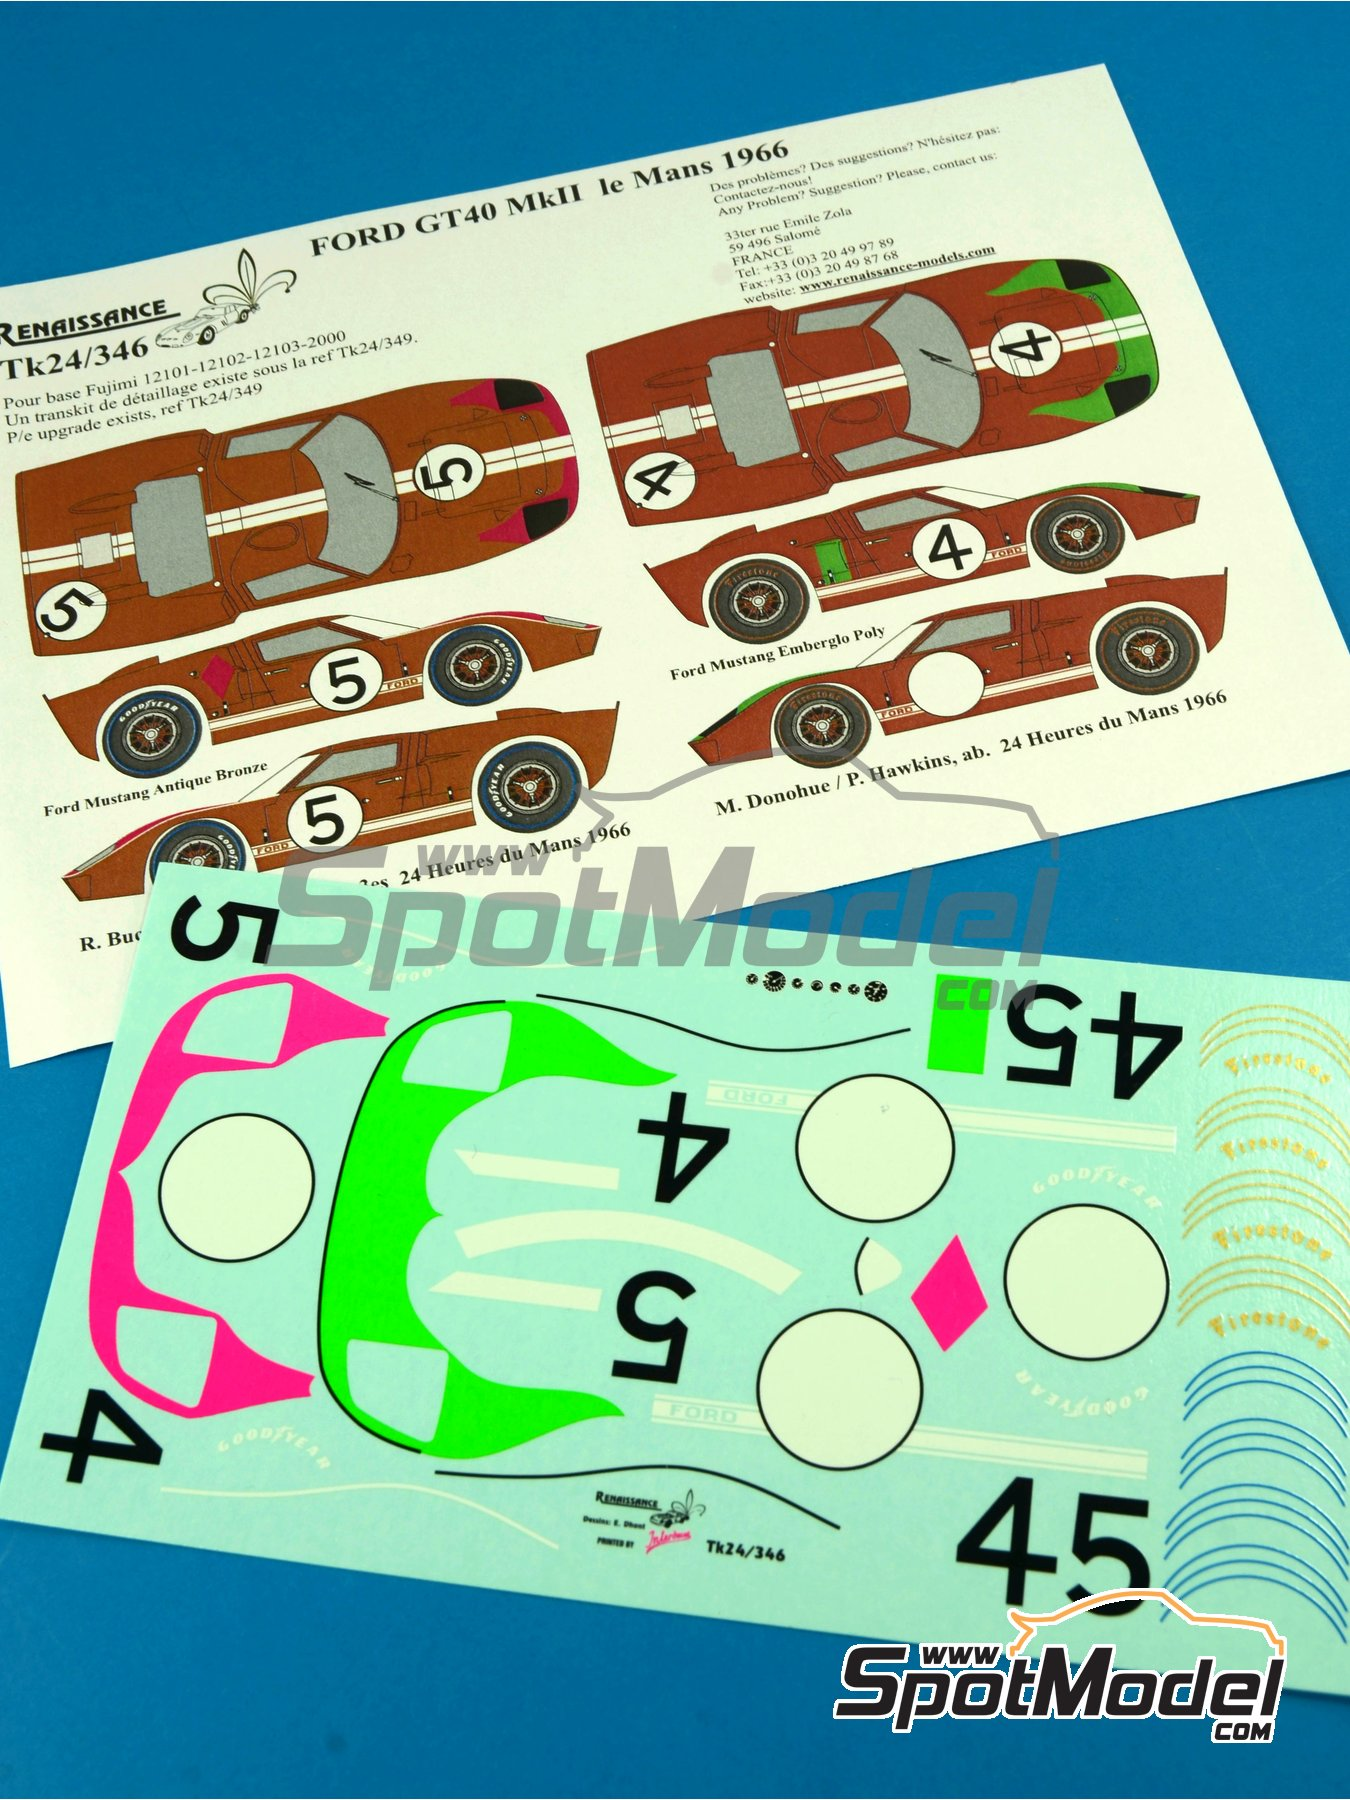 Ford GT40 Mk II - 24 Hours Le Mans 1966 | Marking / livery in 1/24 scale manufactured by Renaissance Models (ref.TK24-346) image